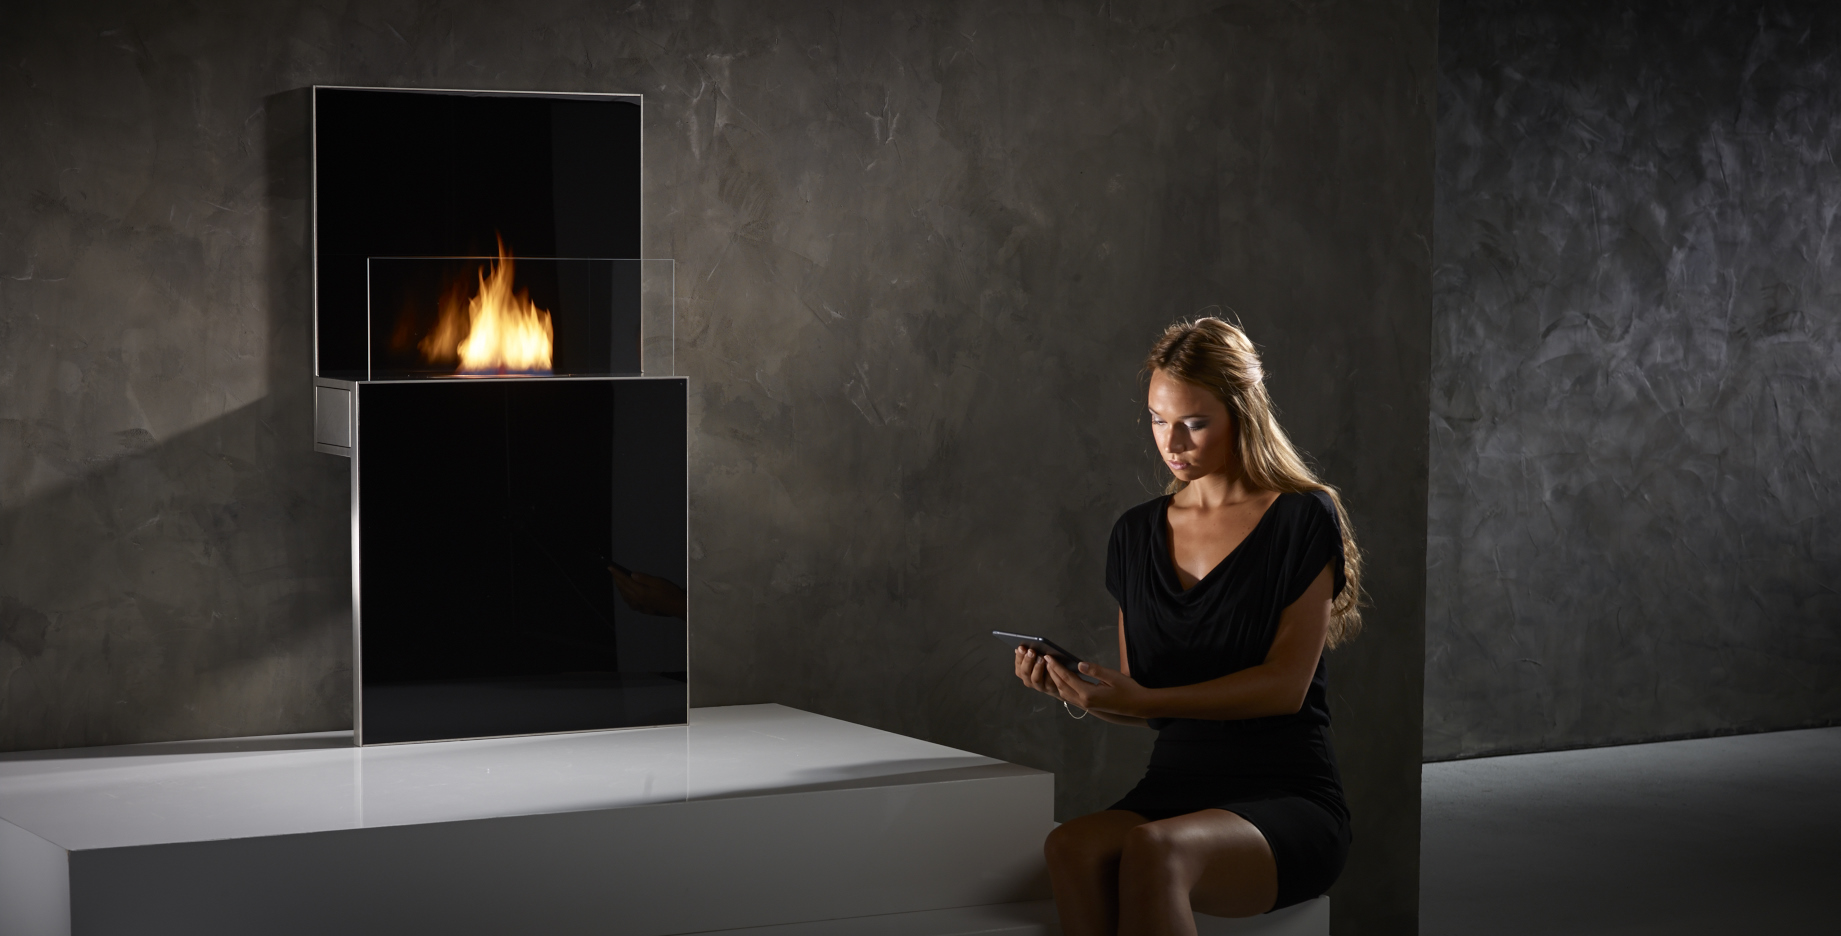 Vertigo Porsche Design Fireplace